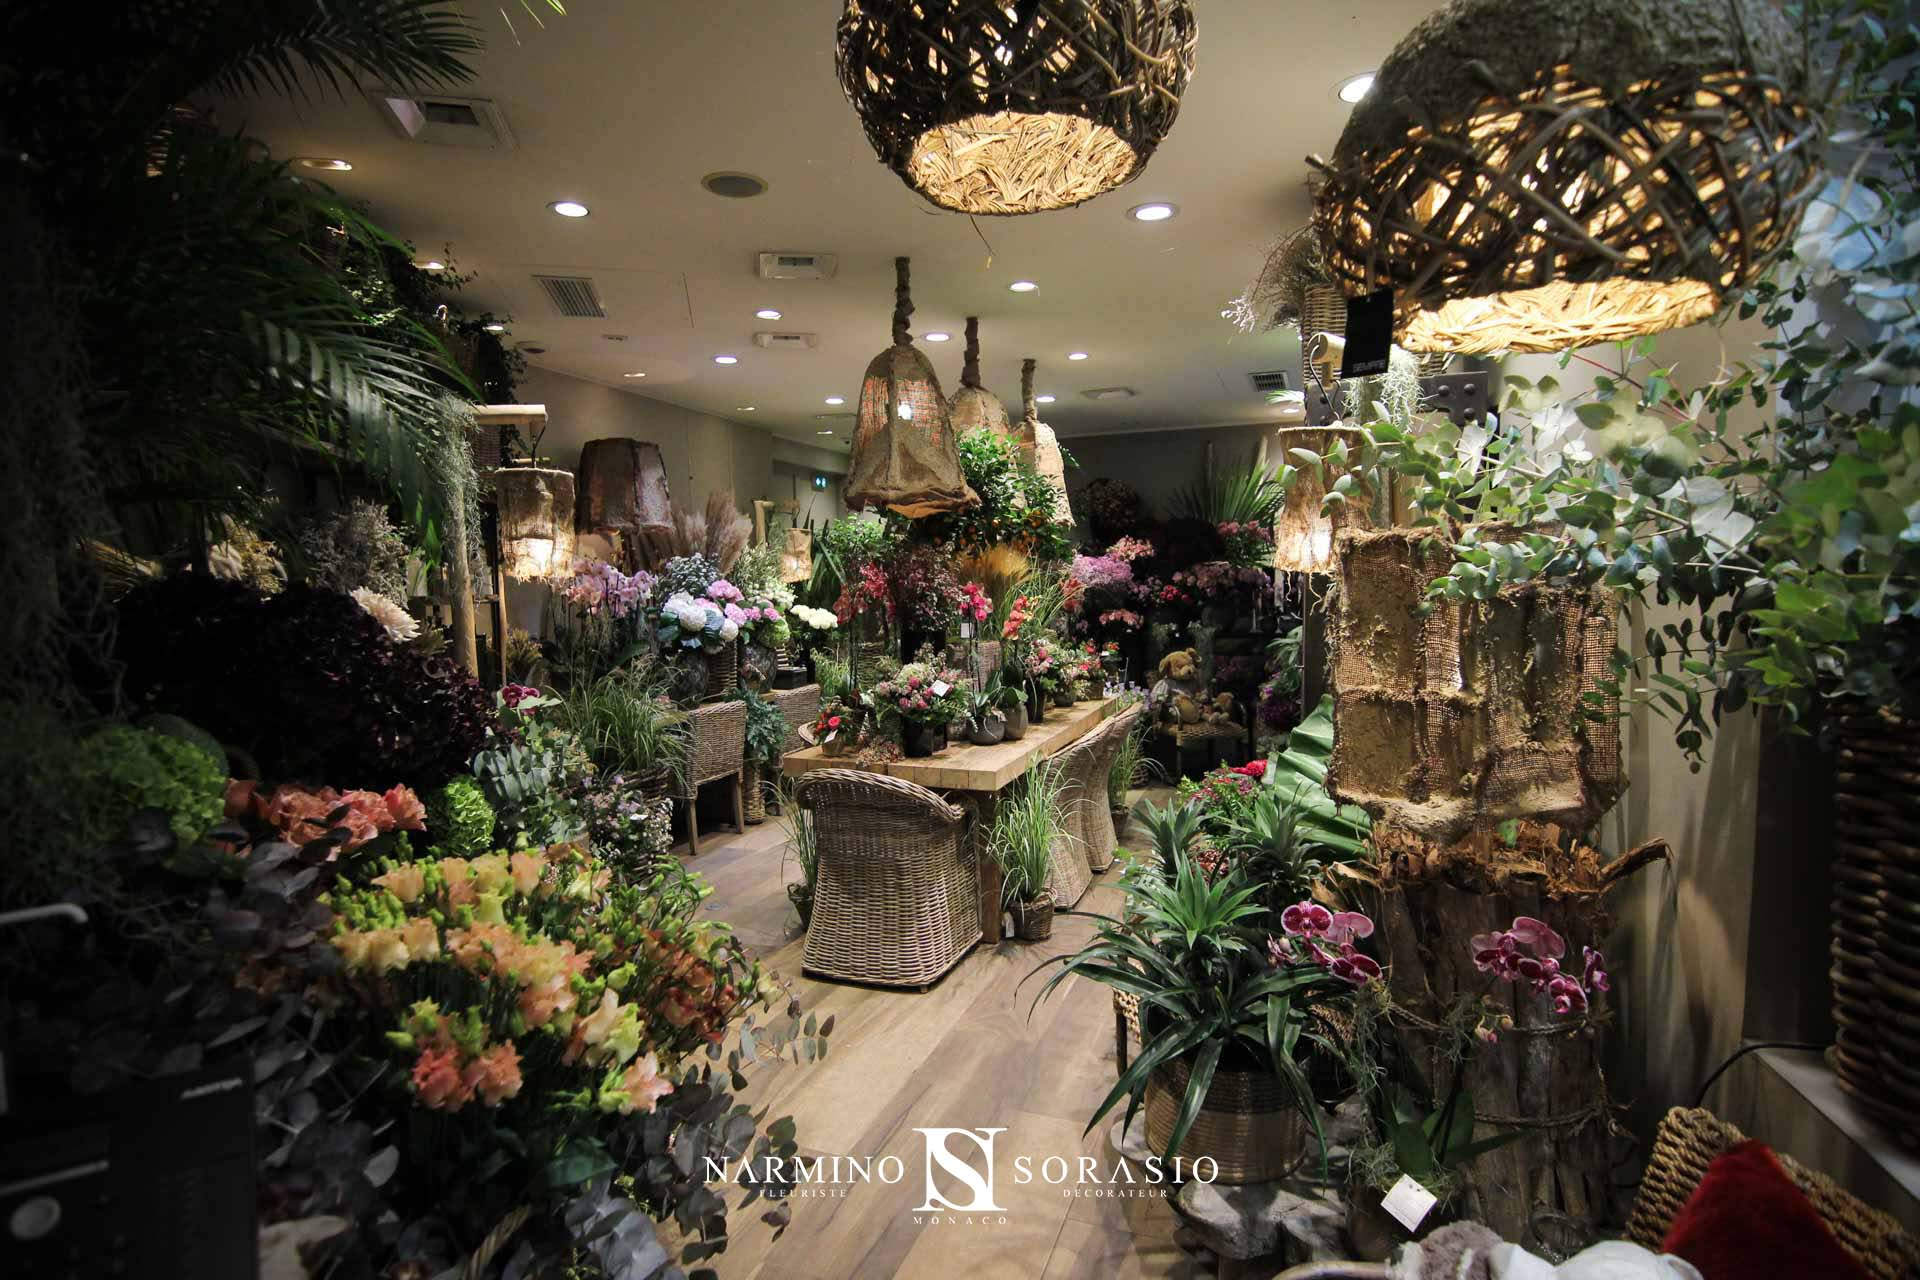 An overview of the new decor at our Narmino Sorasio store